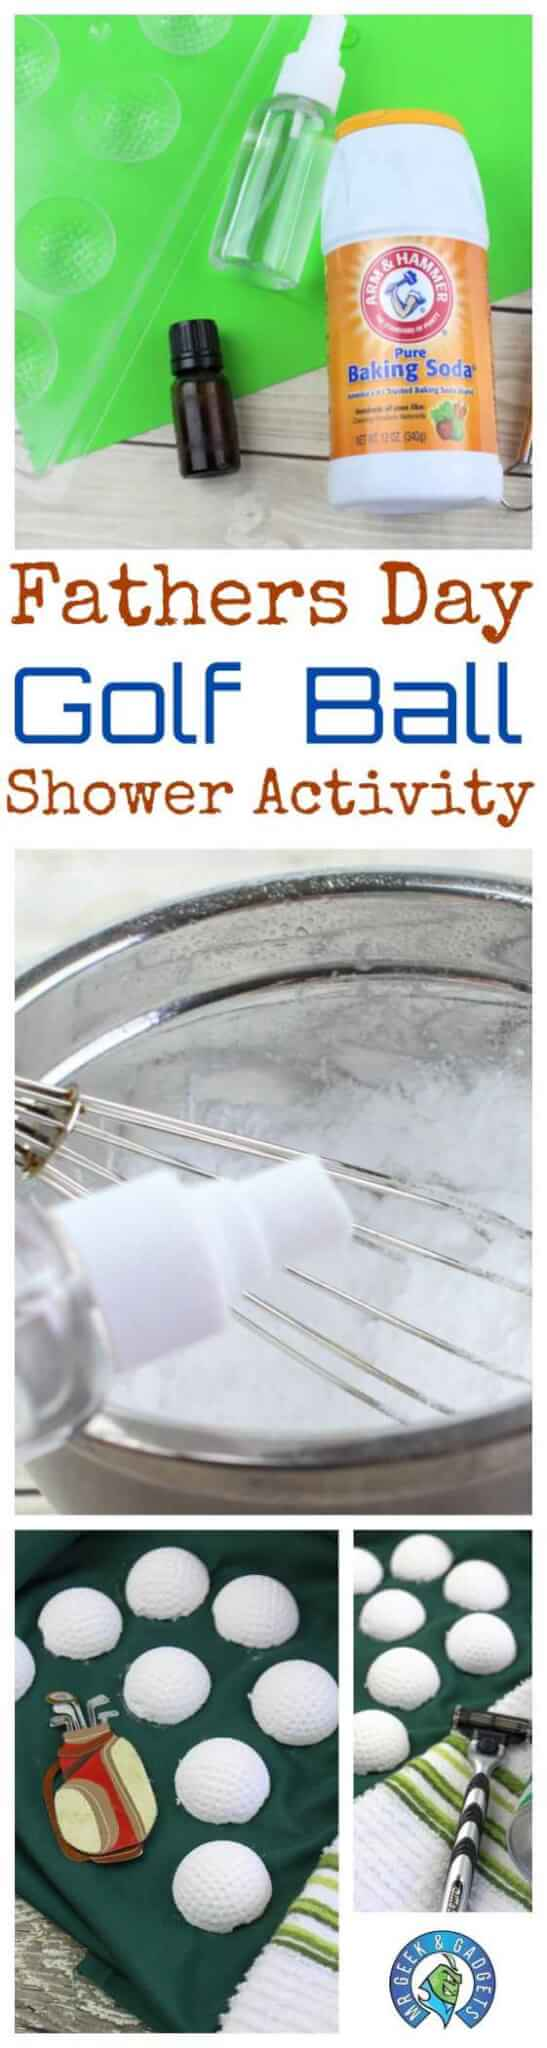 fathers-day-golf-ball-shower-activity | Fathers Day Golf Ball Shower Activity